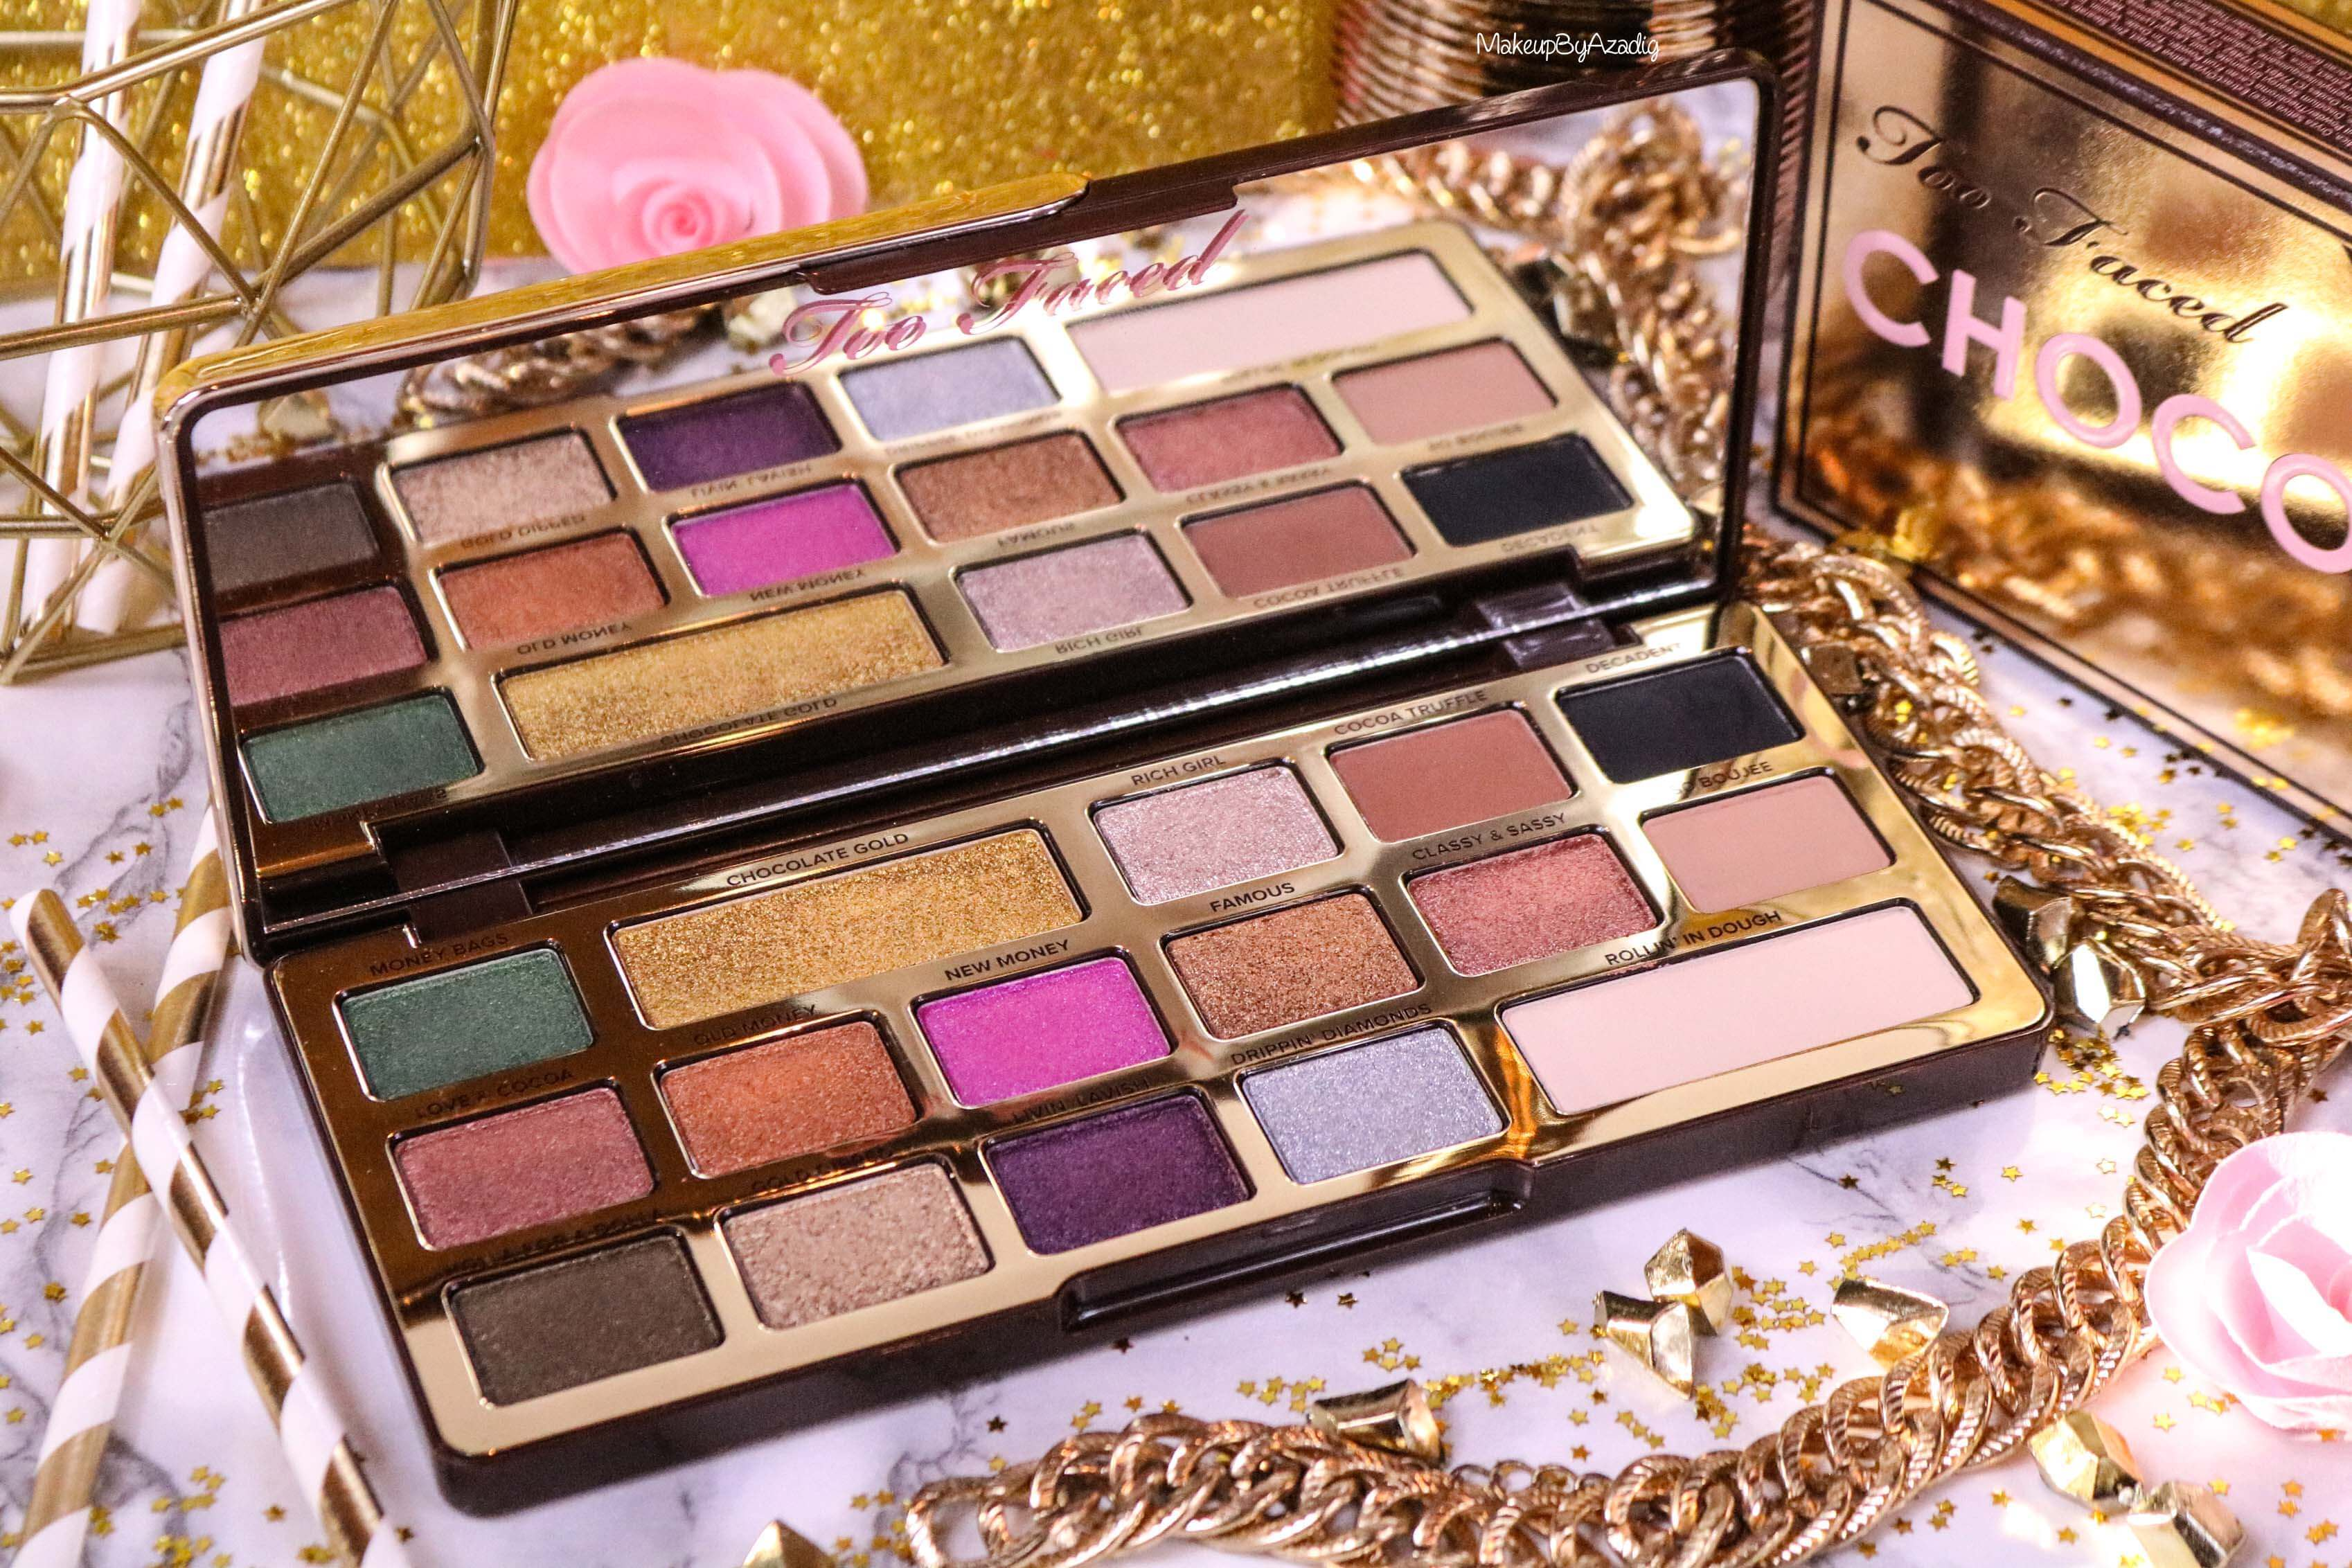 revue-palette-too-faced-chocolate-gold-review-swatch-swatches-avis-prix-makeupbyazadig-influencer-beautiful